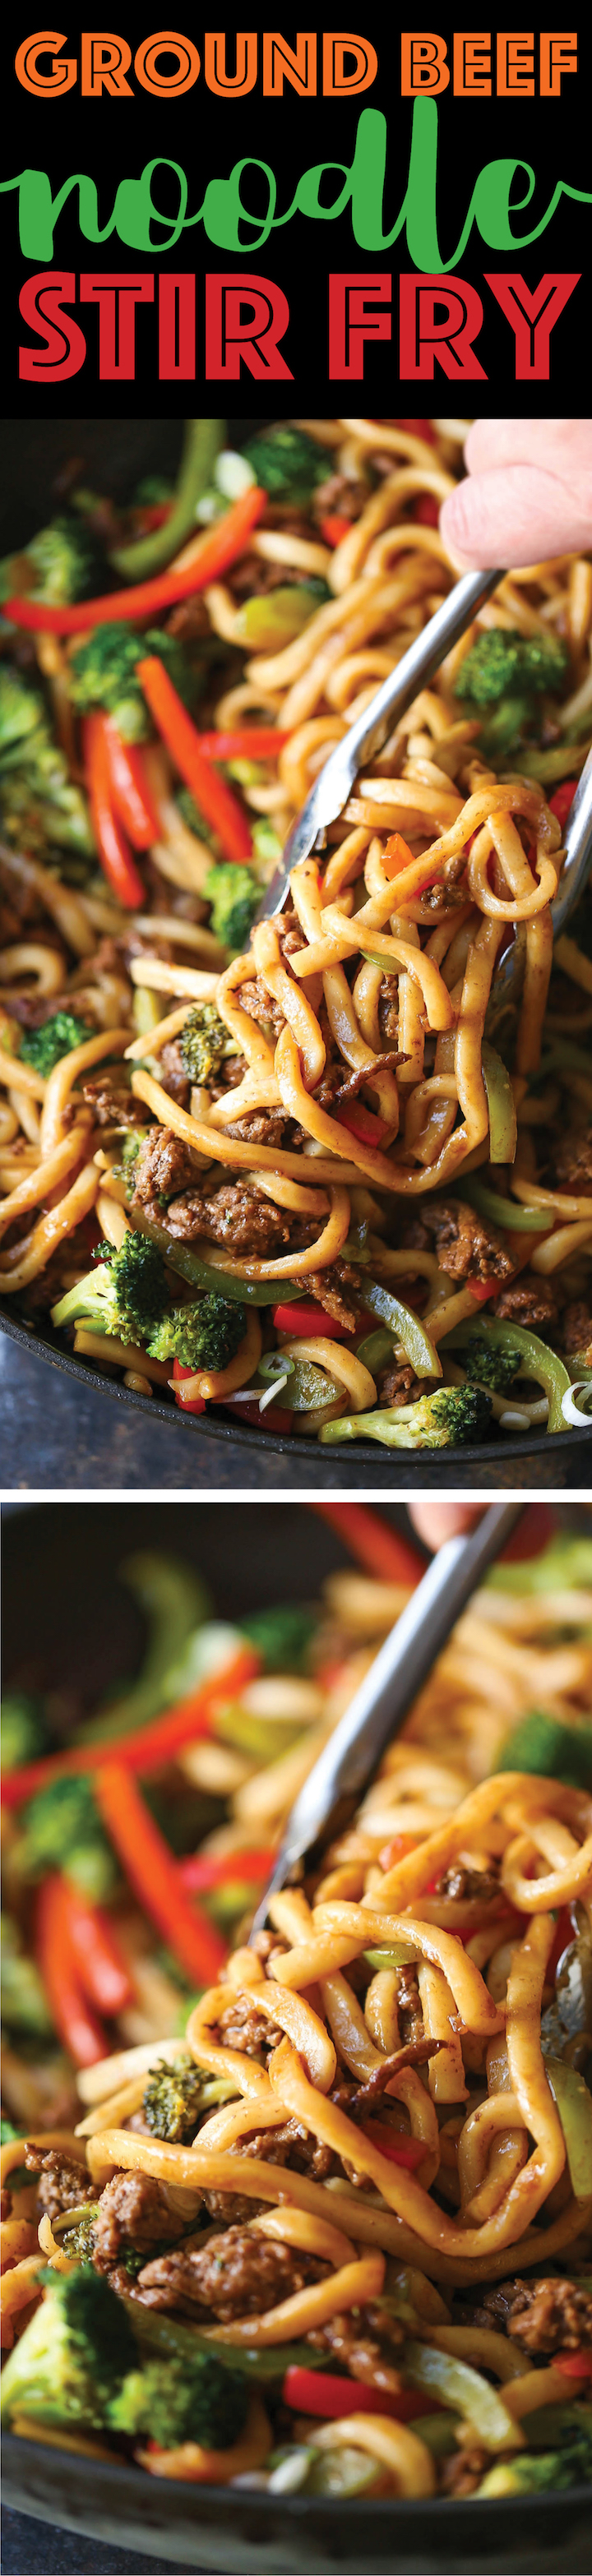 Ground Beef Noodle Stir Fry - Use up all those veggies in the easiest stir-fry of all! Quick, simple and completely customizable to what you have on hand!